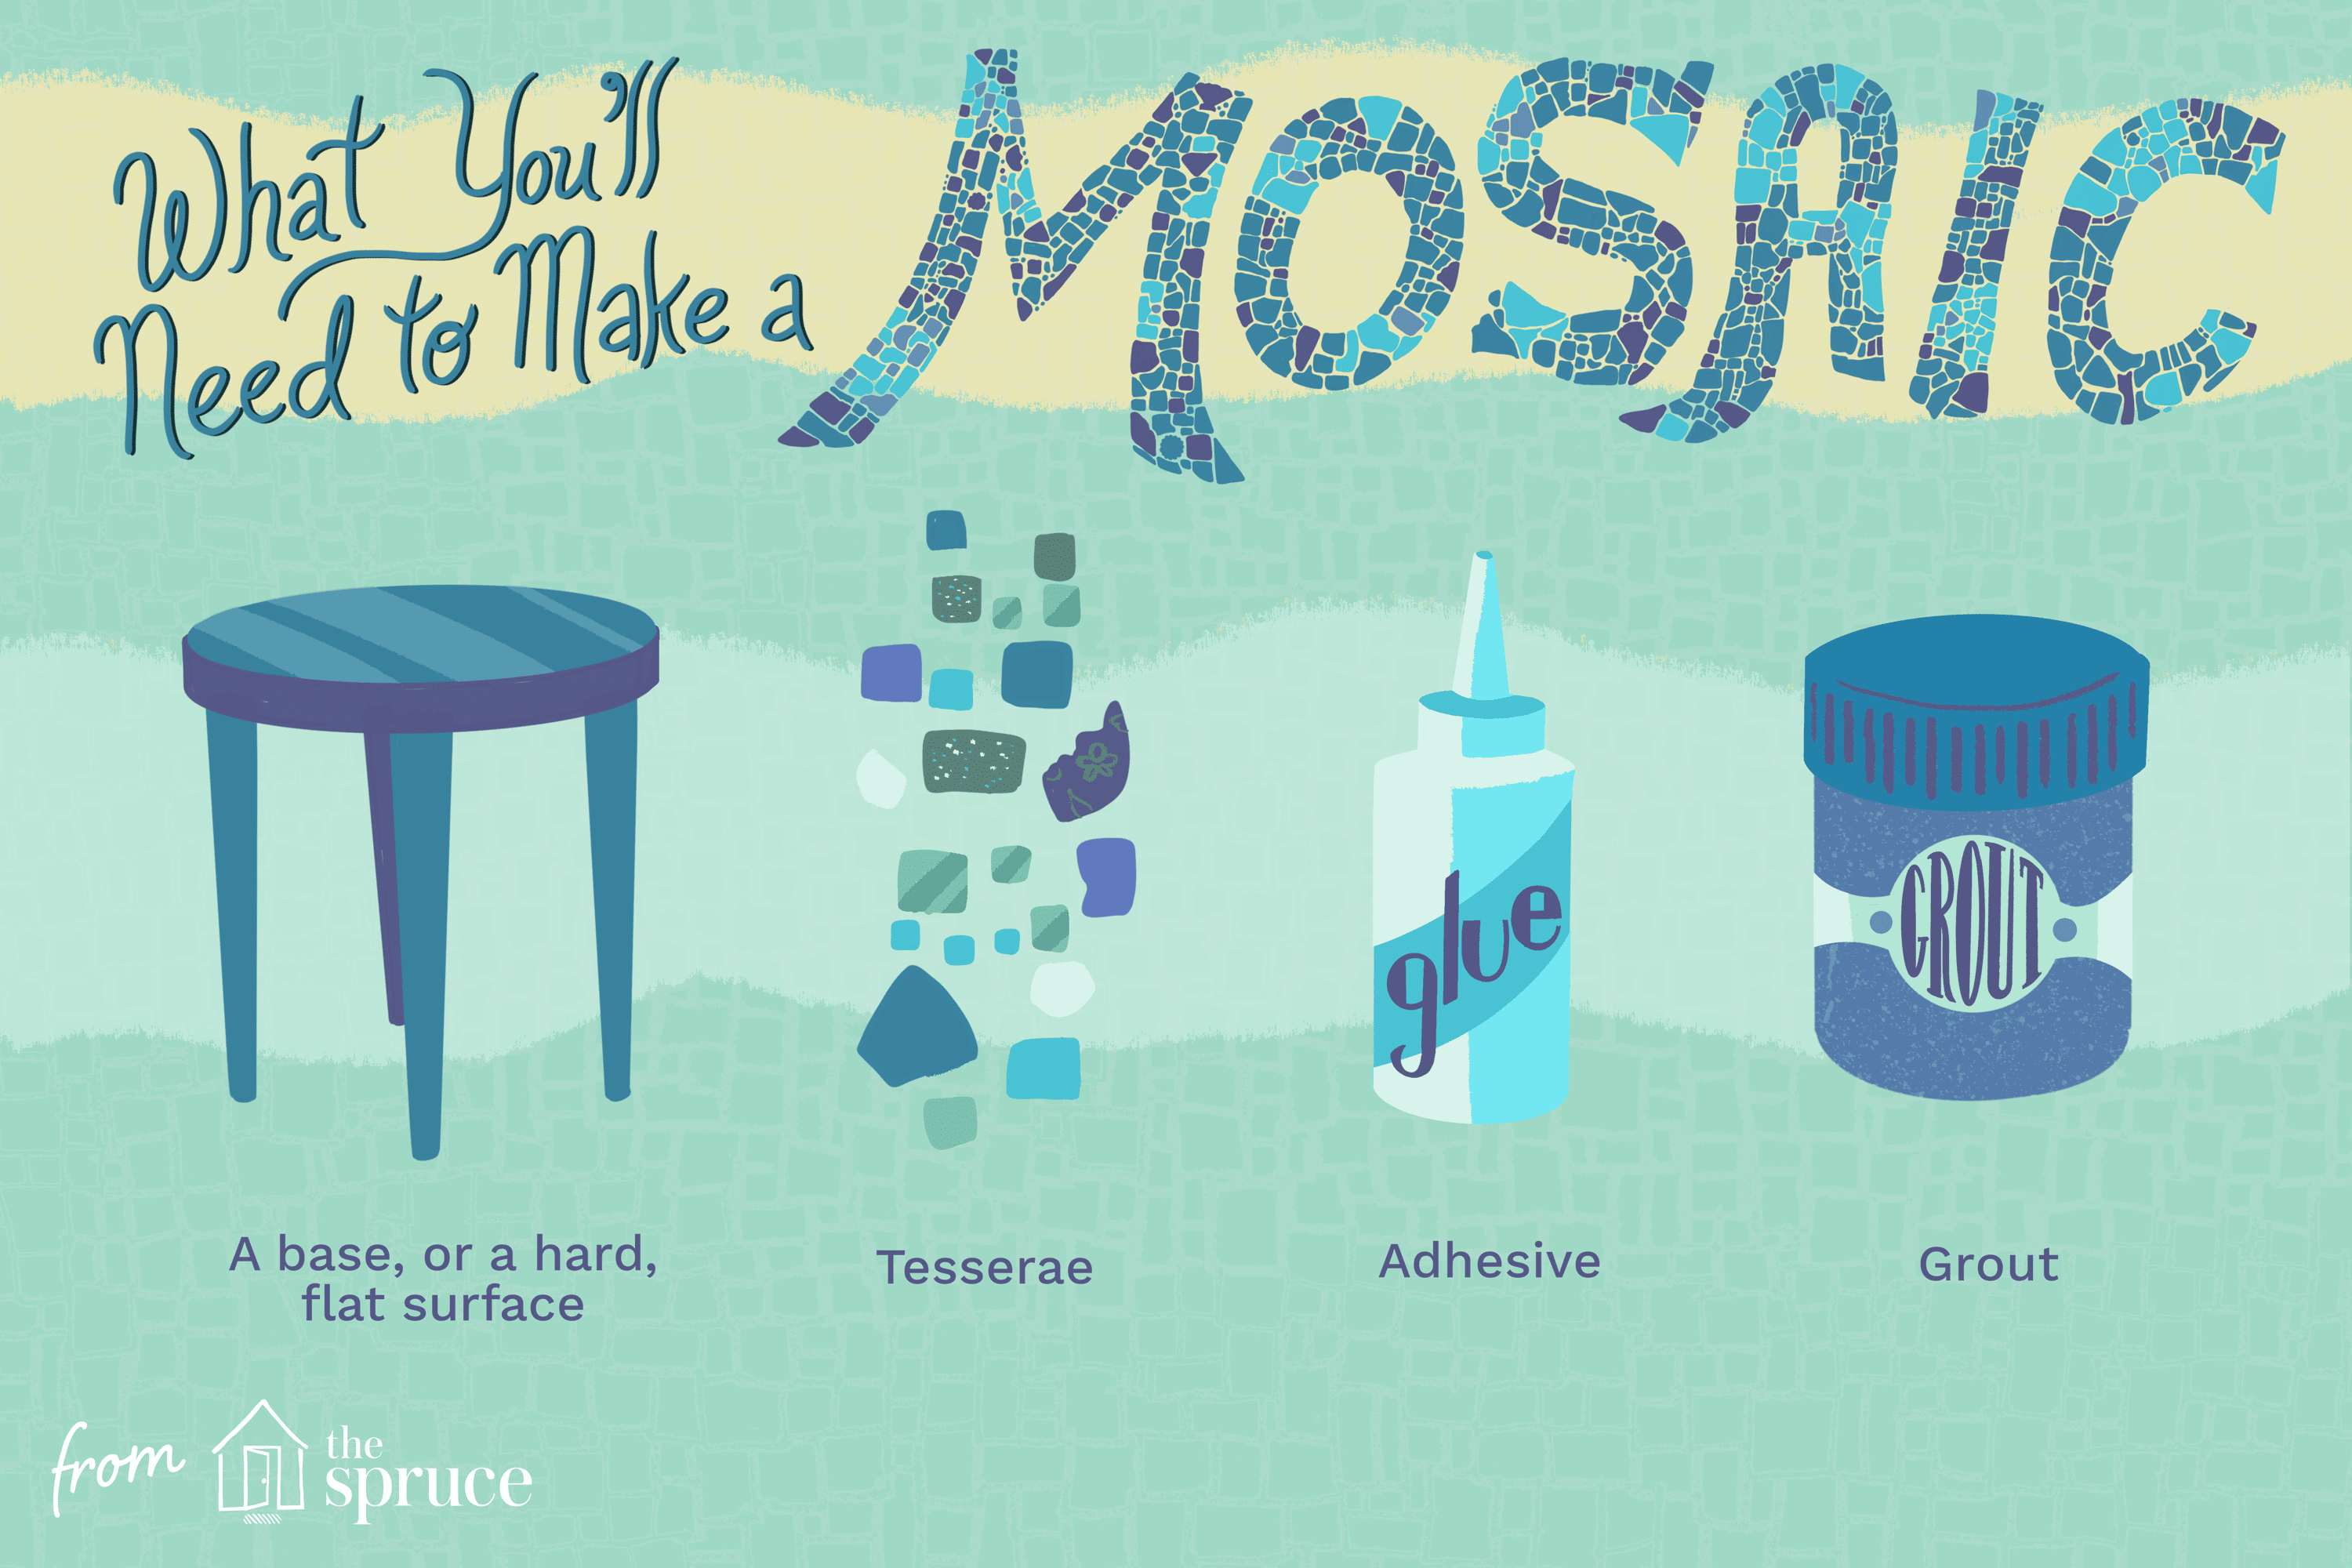 Illustration on how to make a mosaic